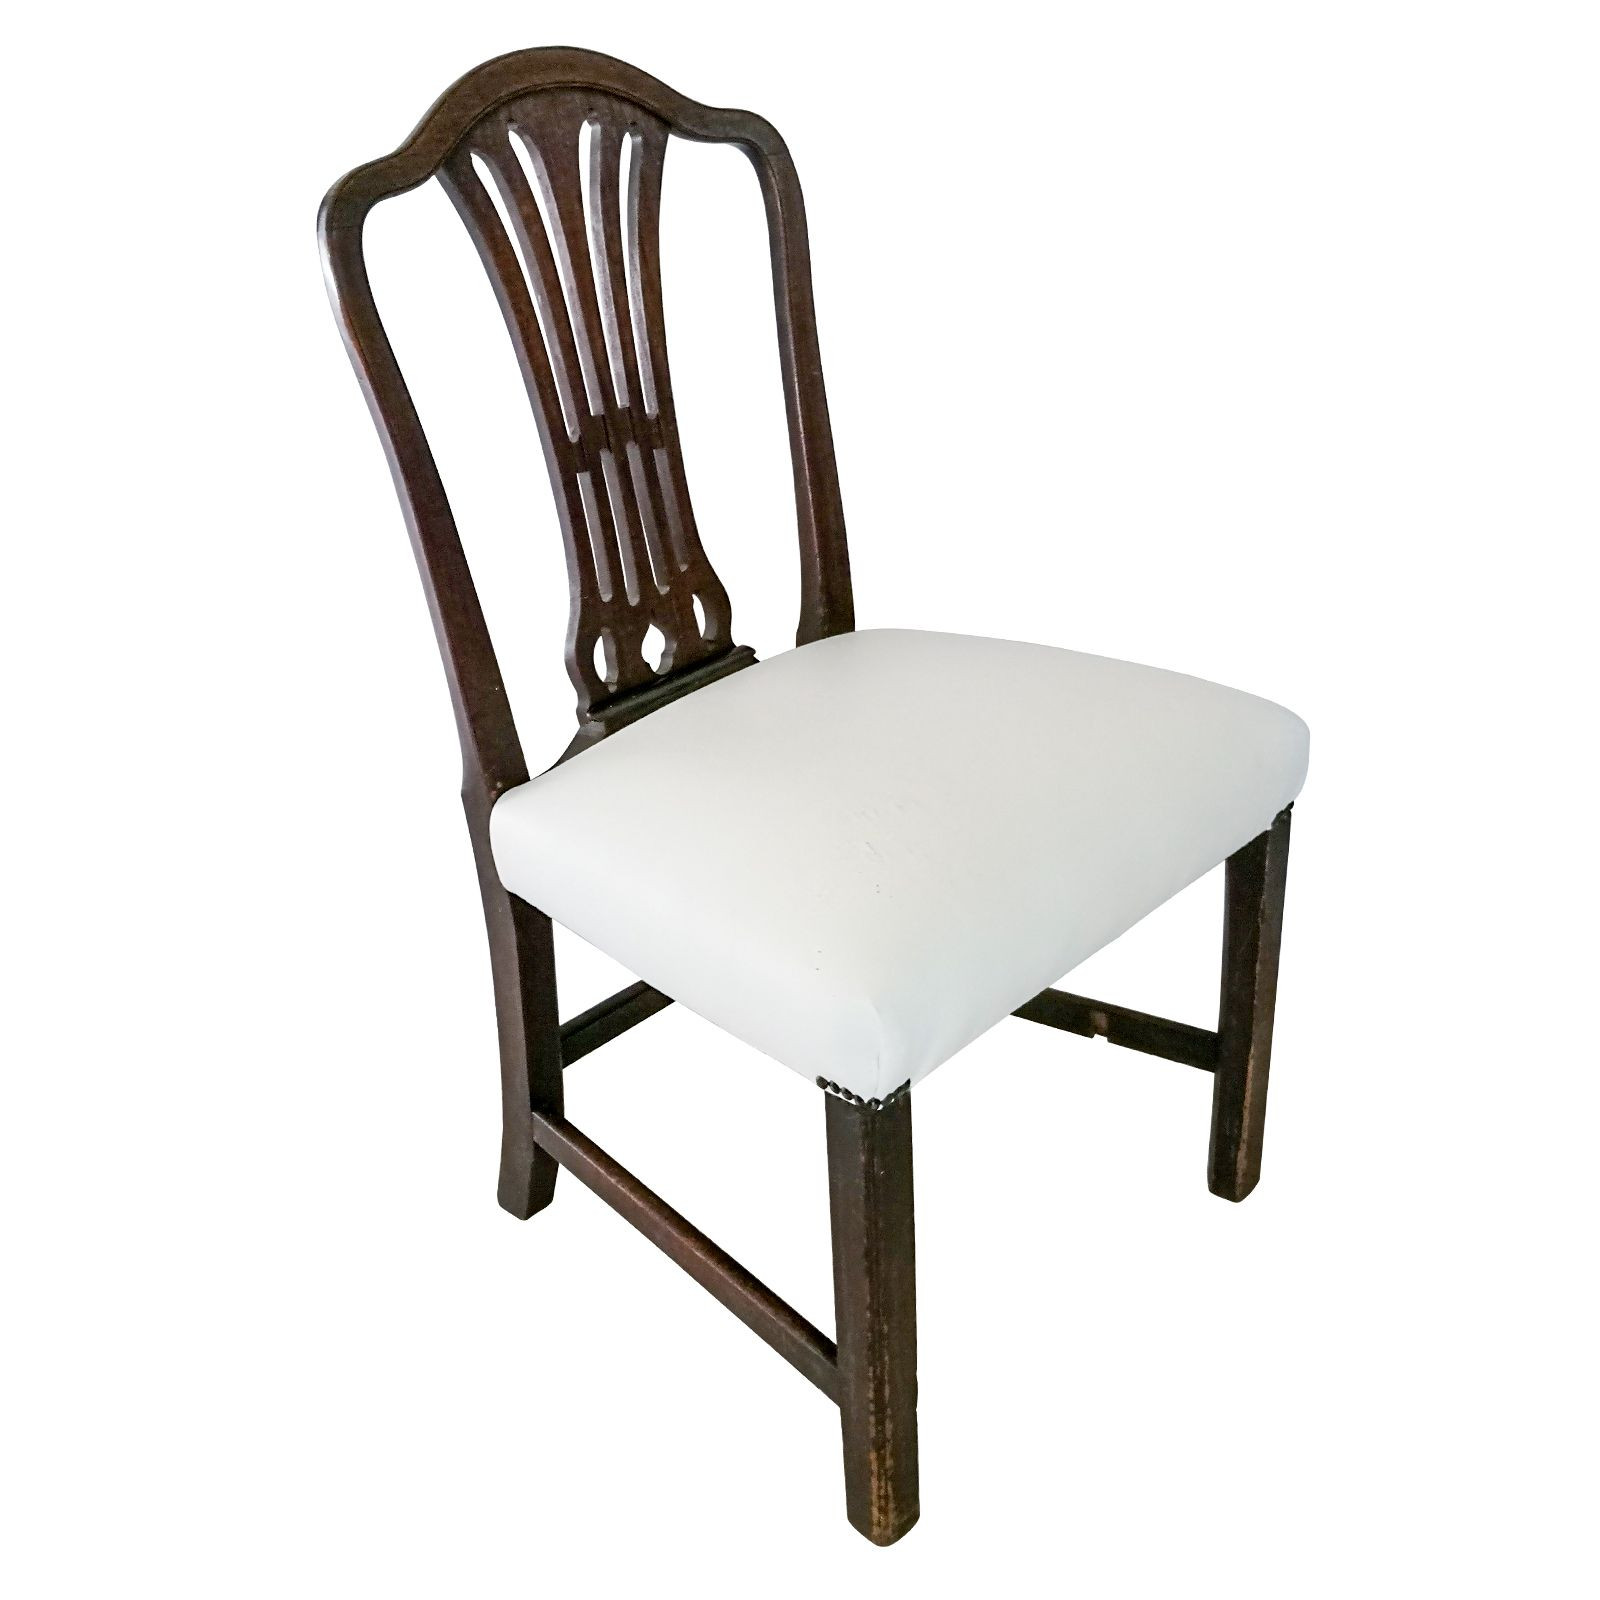 Pleasant Stylish Antique Georgian Dining Chair In Mahogany That Would Machost Co Dining Chair Design Ideas Machostcouk